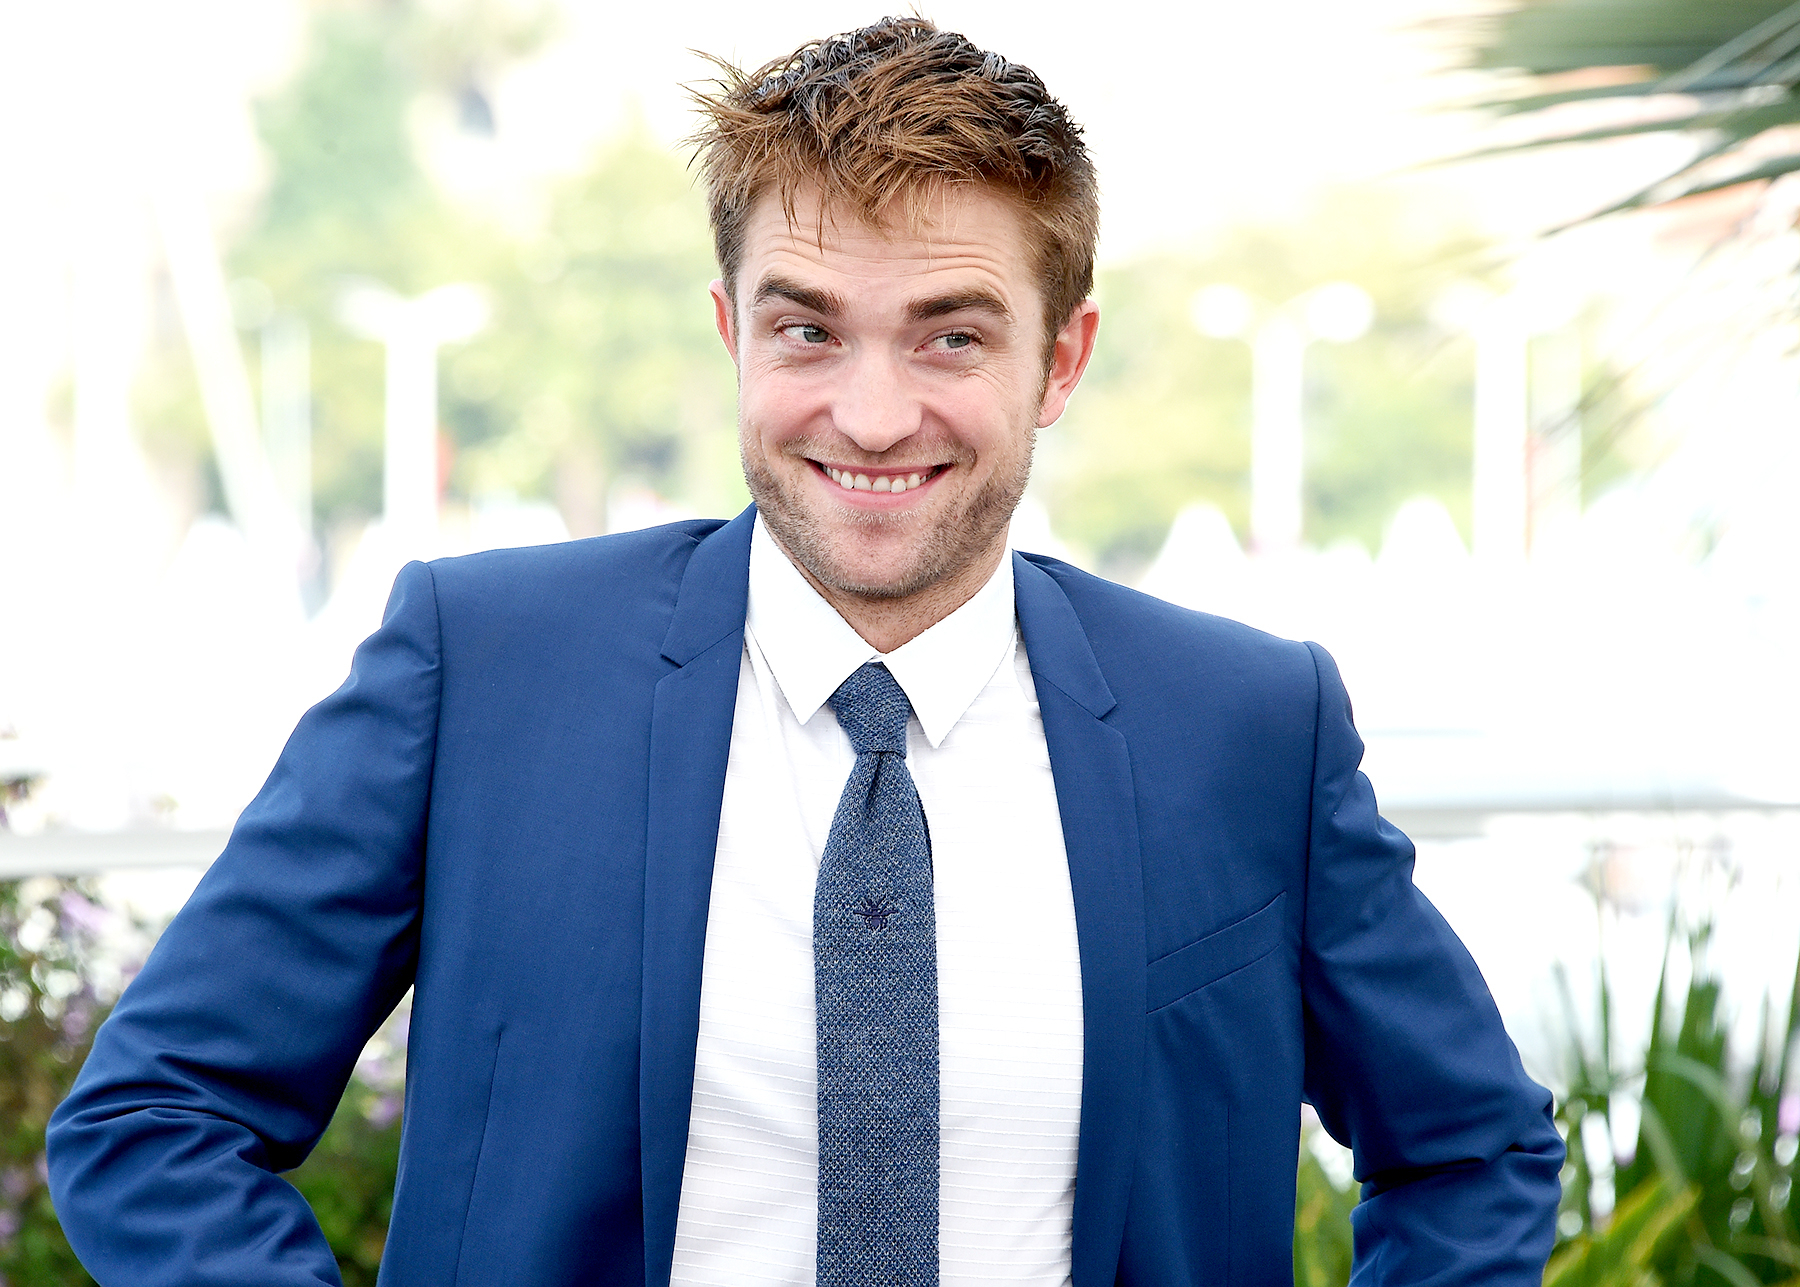 """Robert Pattinson poses at the photocall for the movie """"Good Time"""" on the ninth day of the Cannes Film Festival on May 25, 2017 in Cannes, France."""